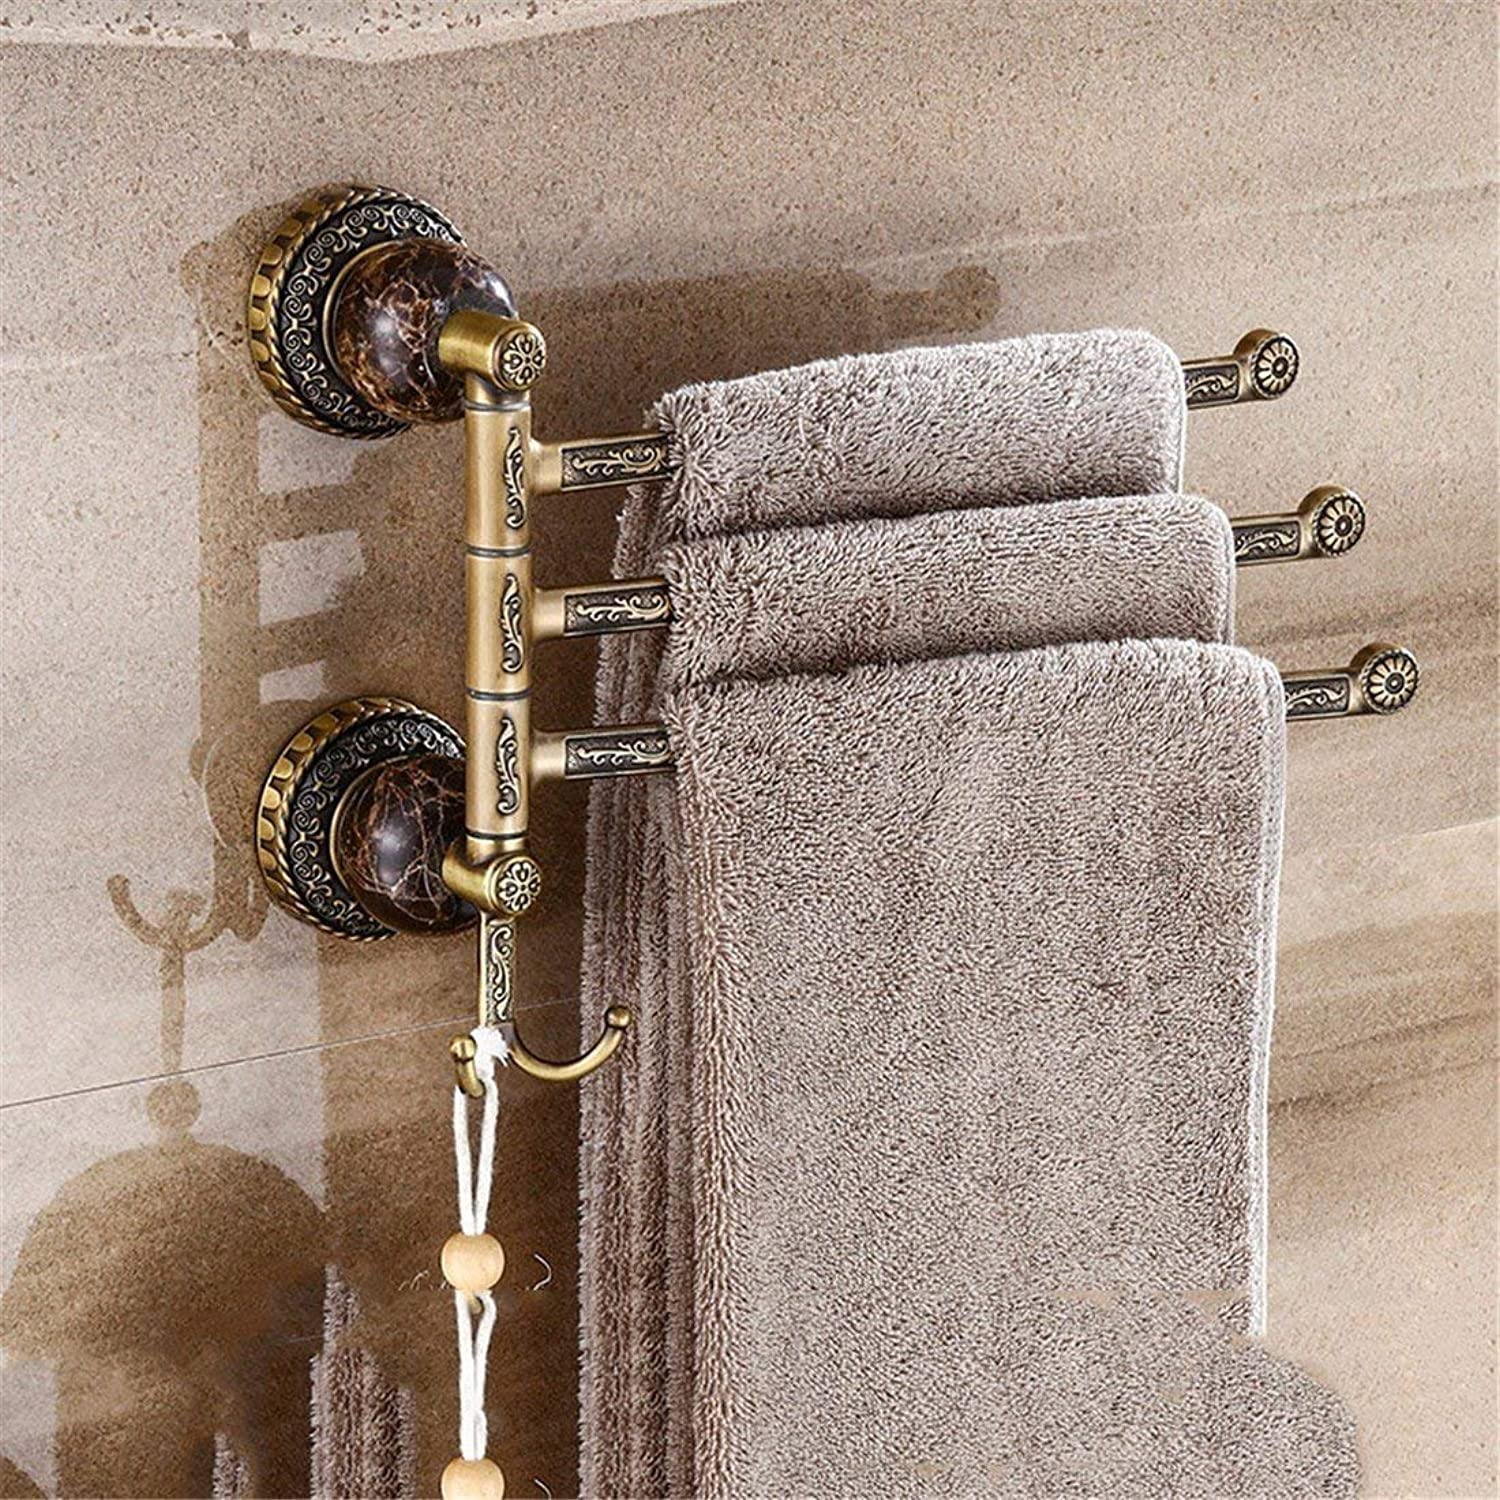 European Style Black Jade Old Old Engraving Copper color Accessories for Bathroom Dry-Towels,Wall-Mount Suspension 3 Bar